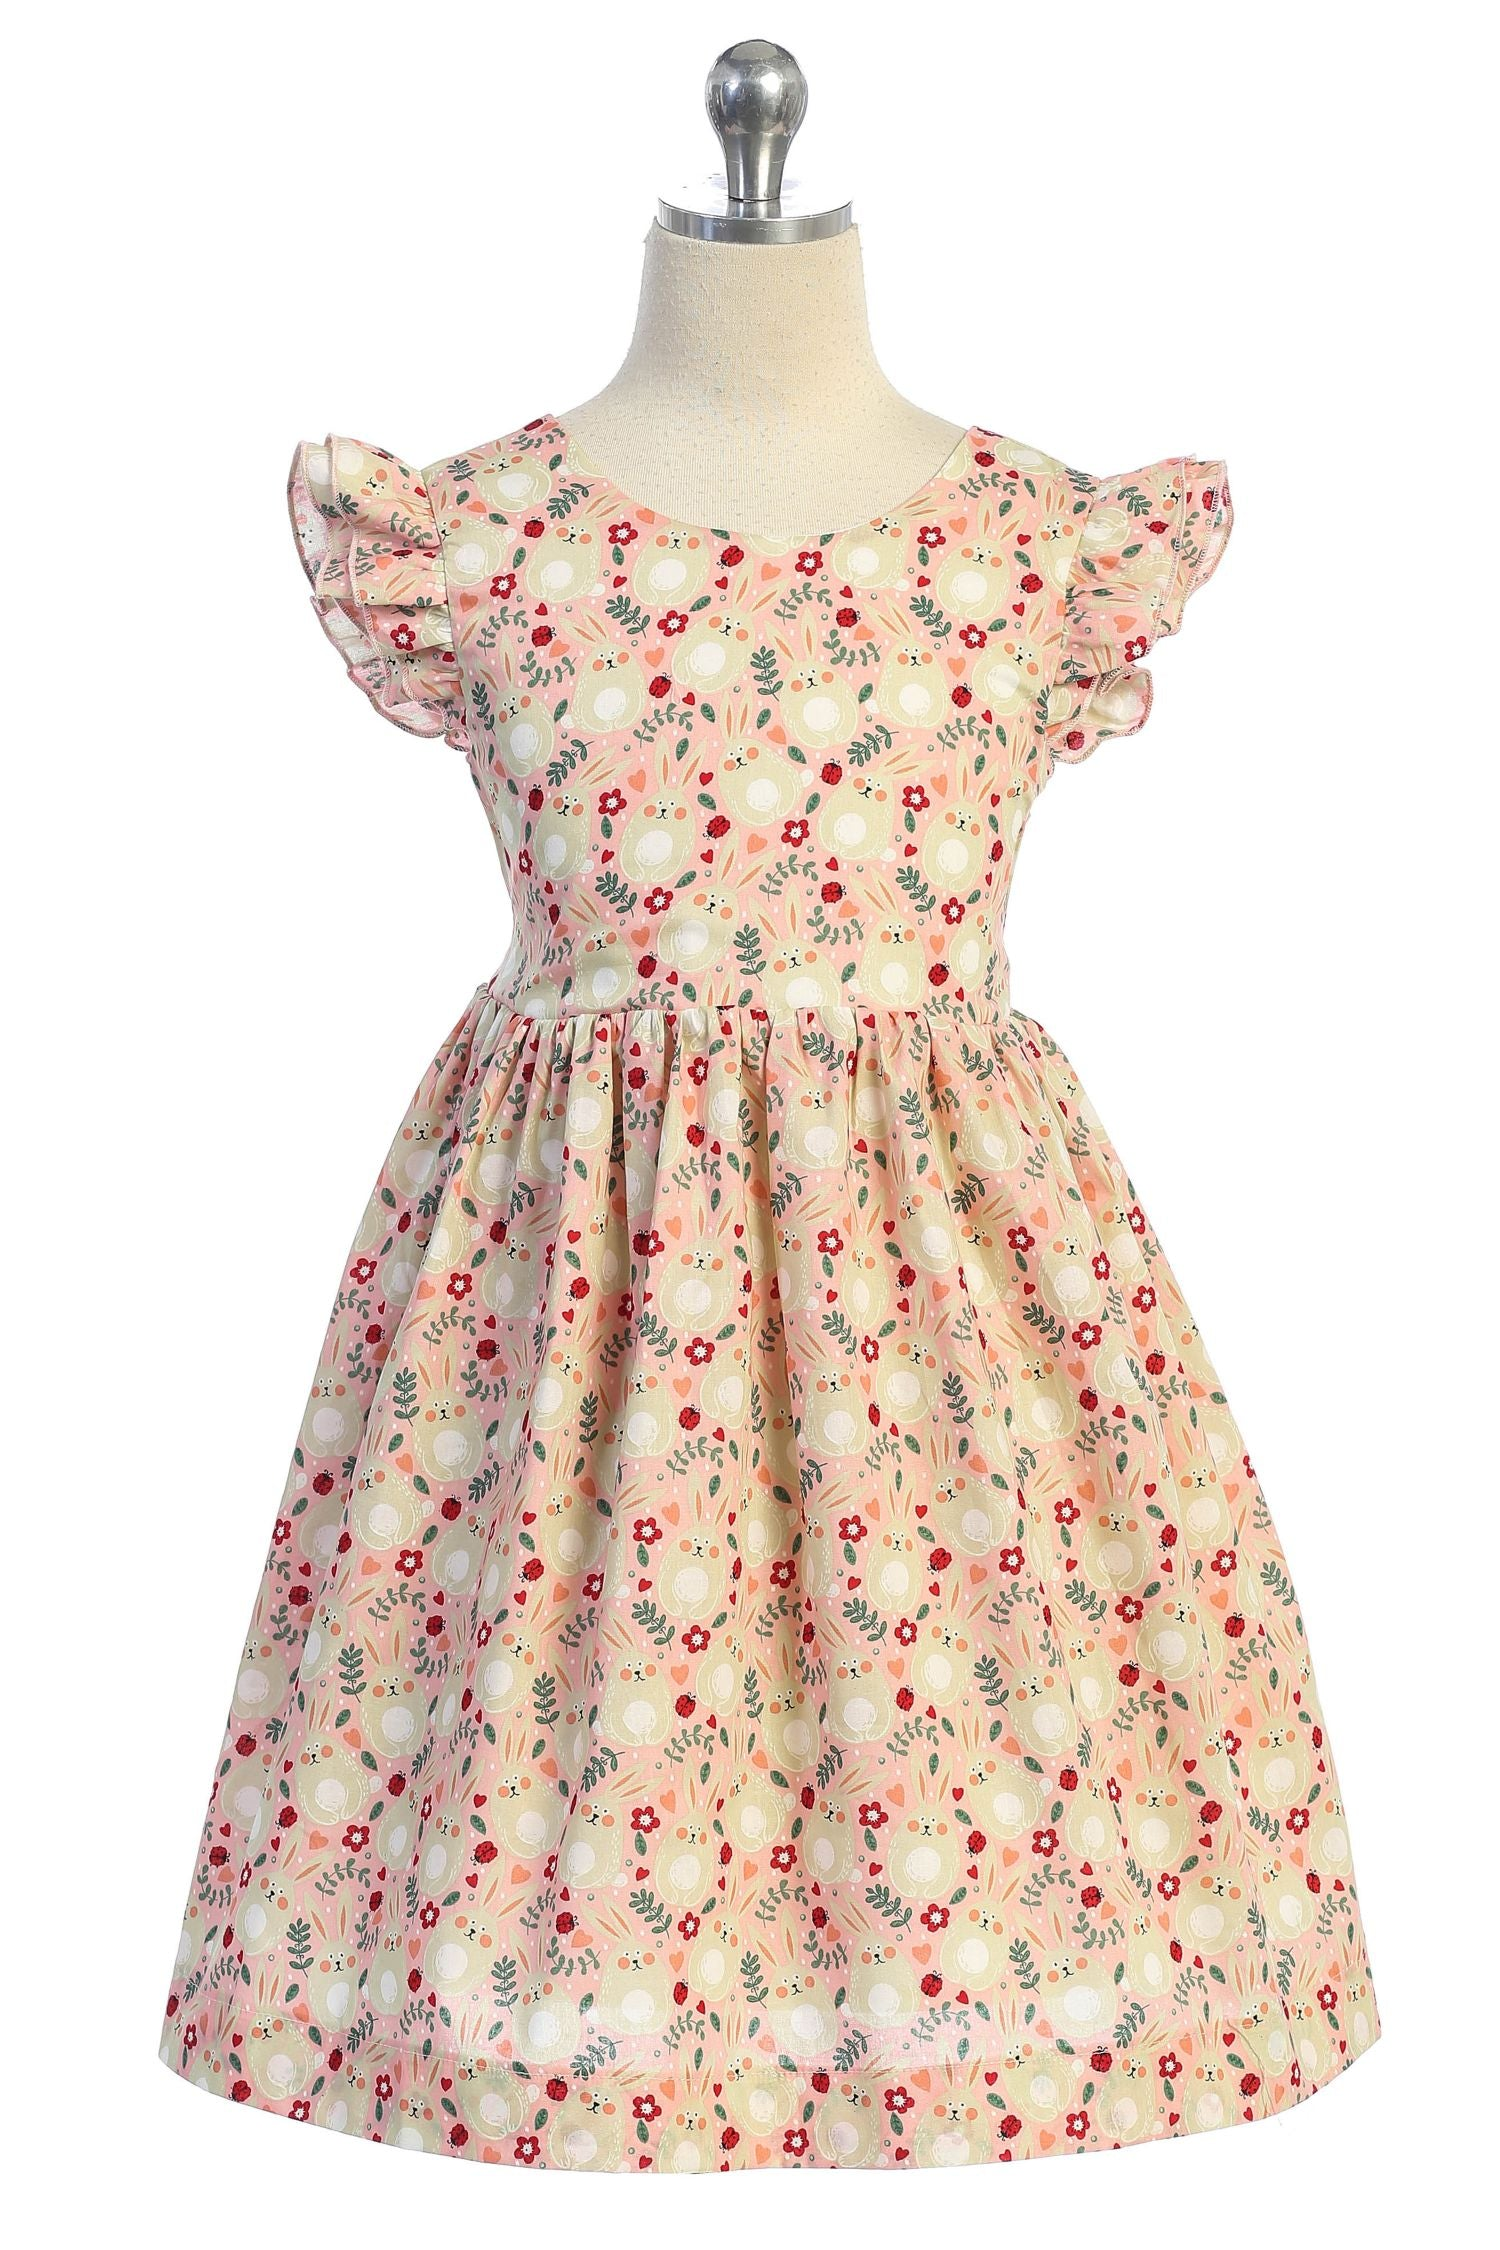 Bunny Cotton Dress